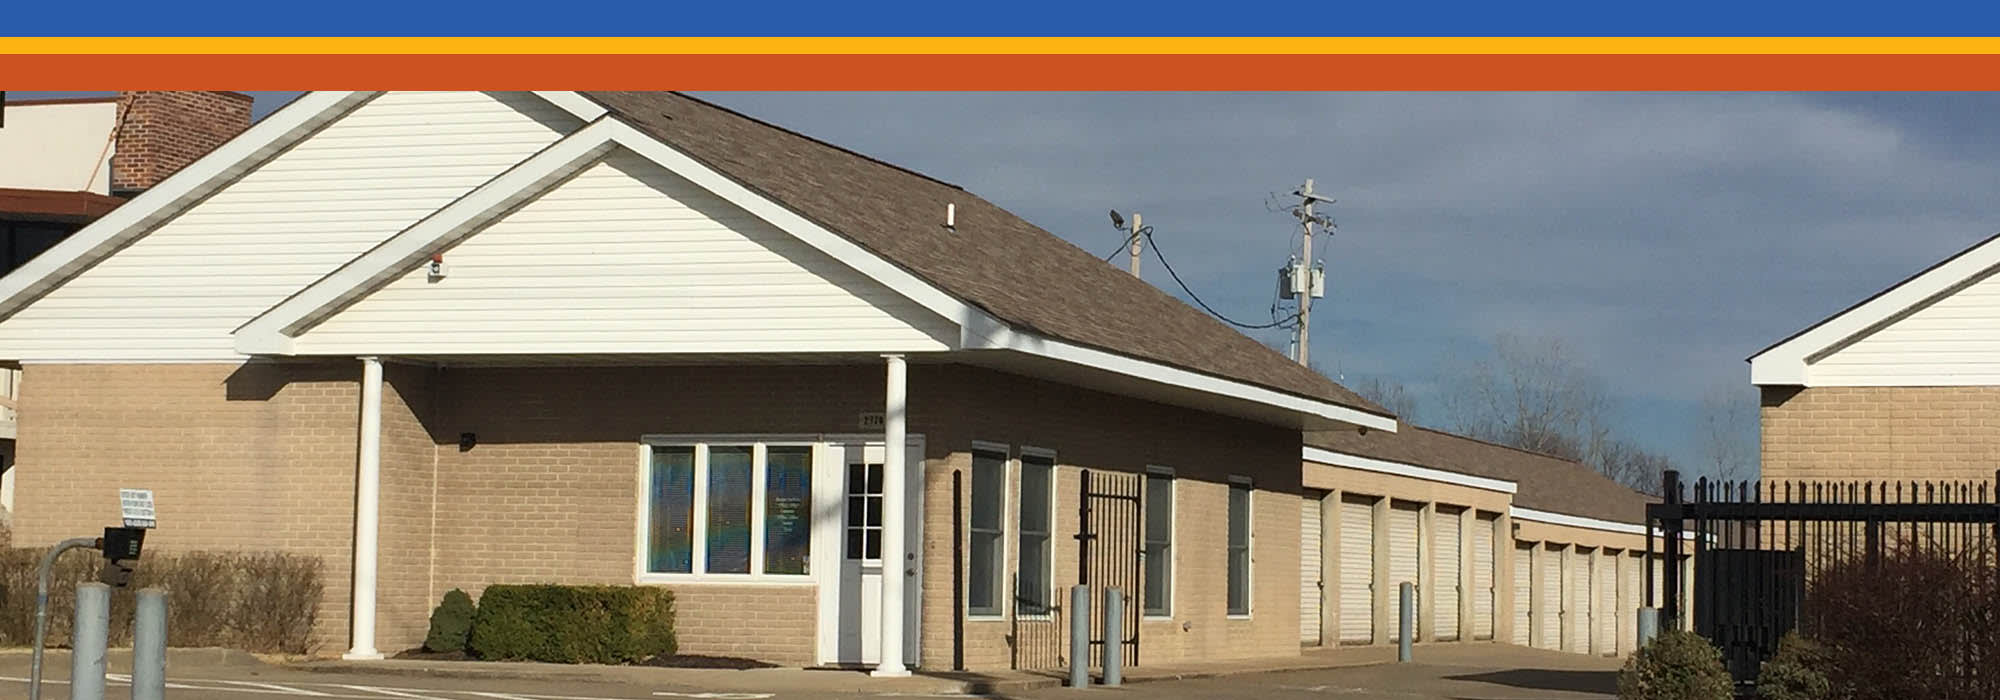 Self storage in O'Fallon MO